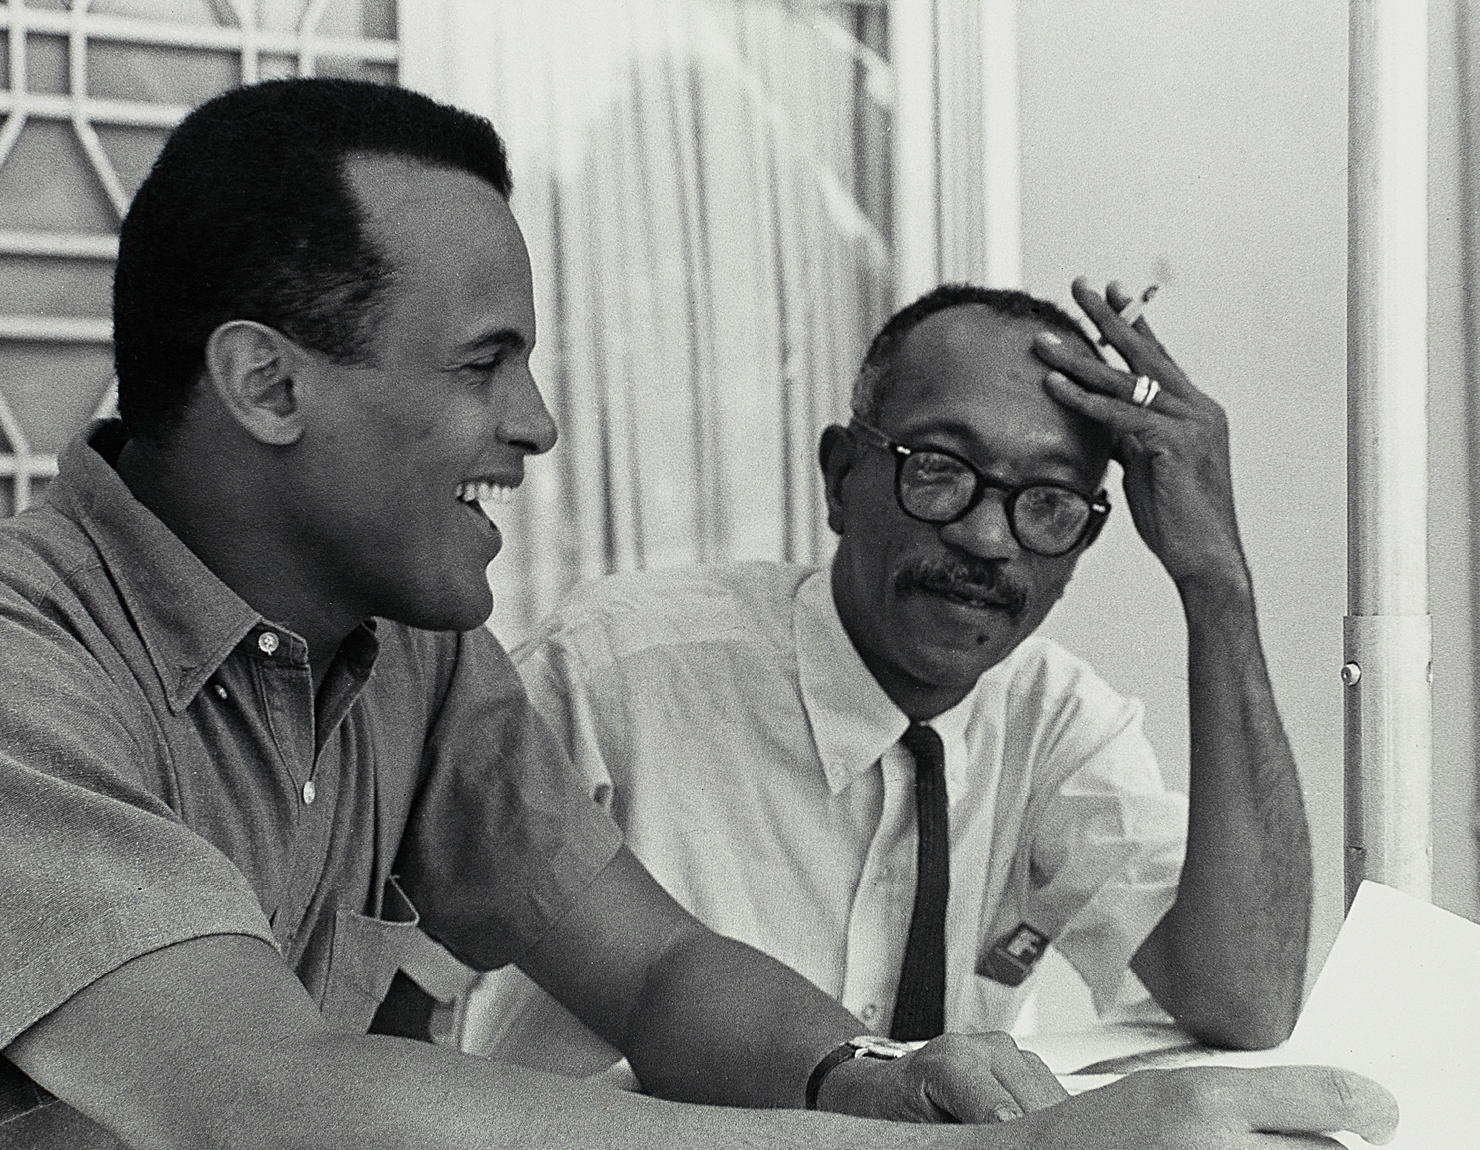 Charles White and Harry Belafonte working on Songs Belafonte Sings, 1962, The Charles White Archives, digital image by Natalja Kent